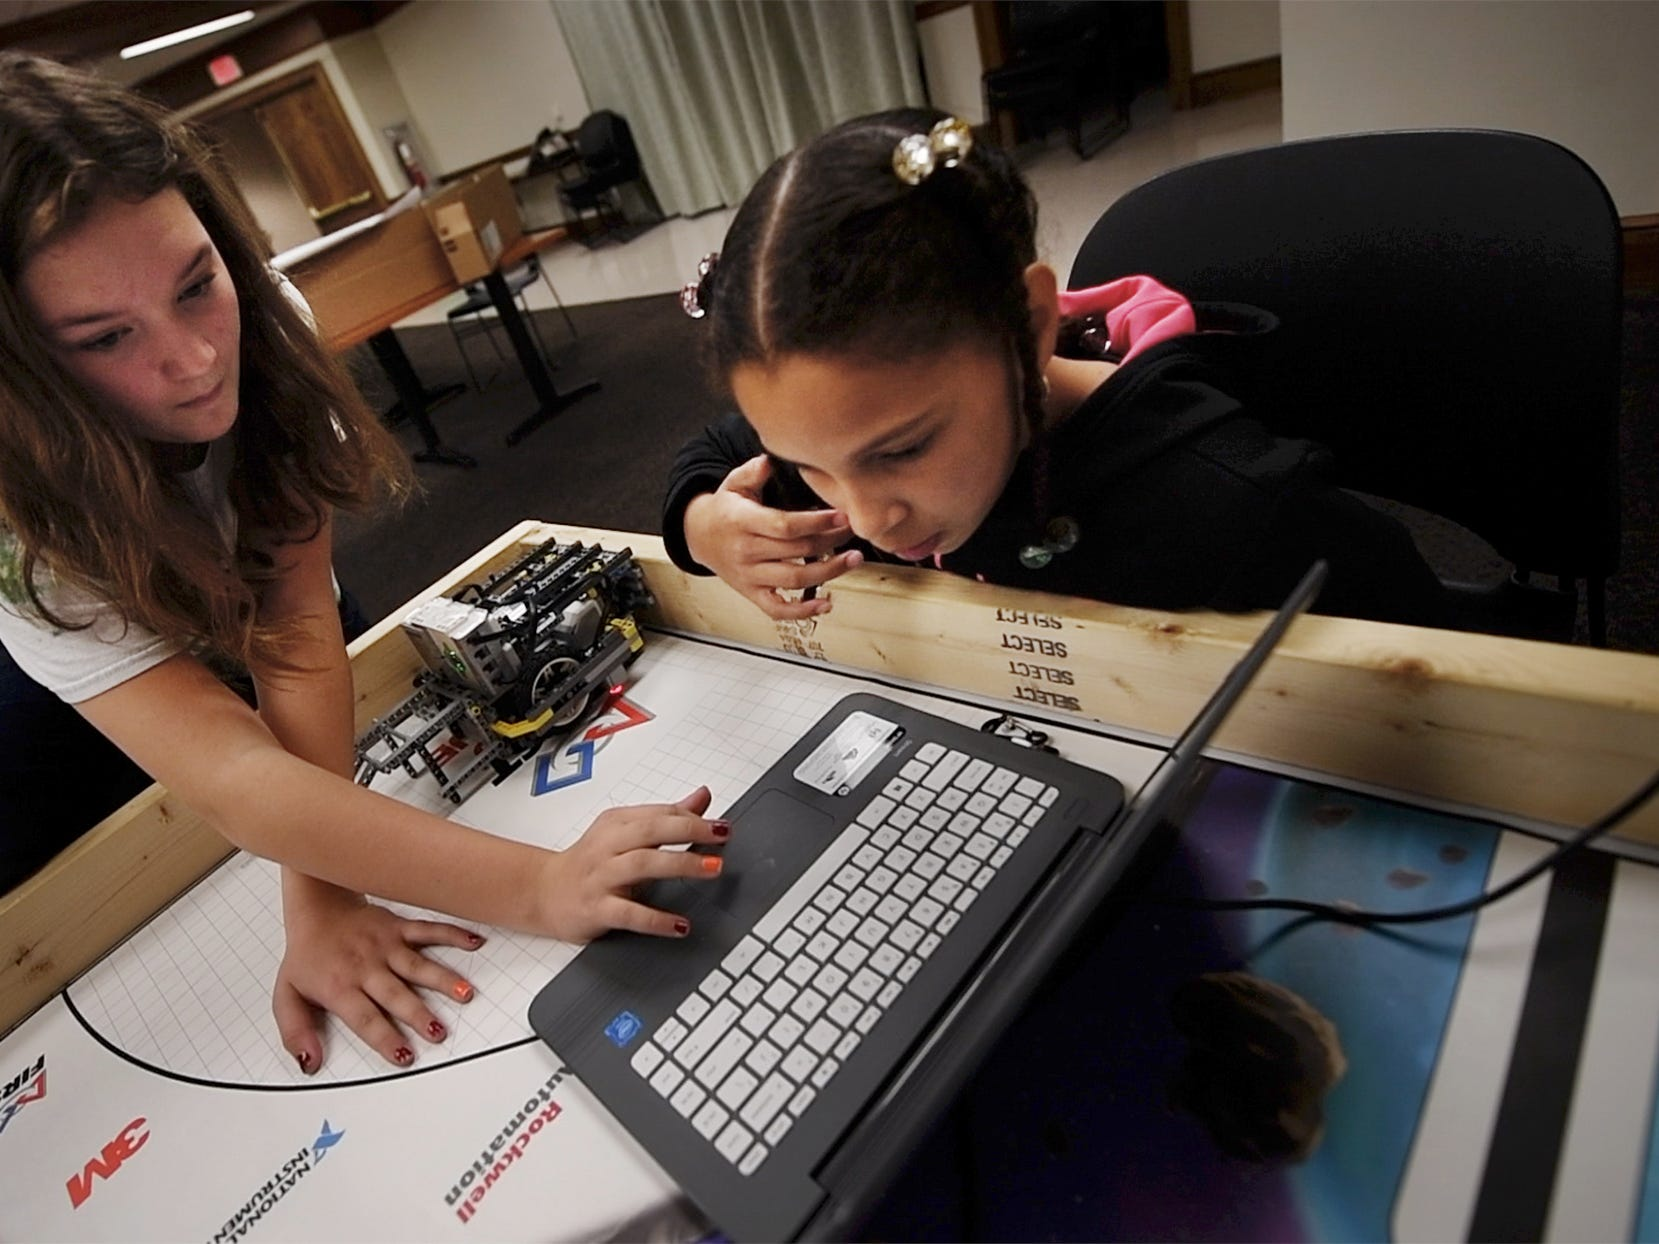 Chloe Broadwater, left, works with Addison Markle programming a robot during a meet with the Young Thinkers of York at Martin Library in York.